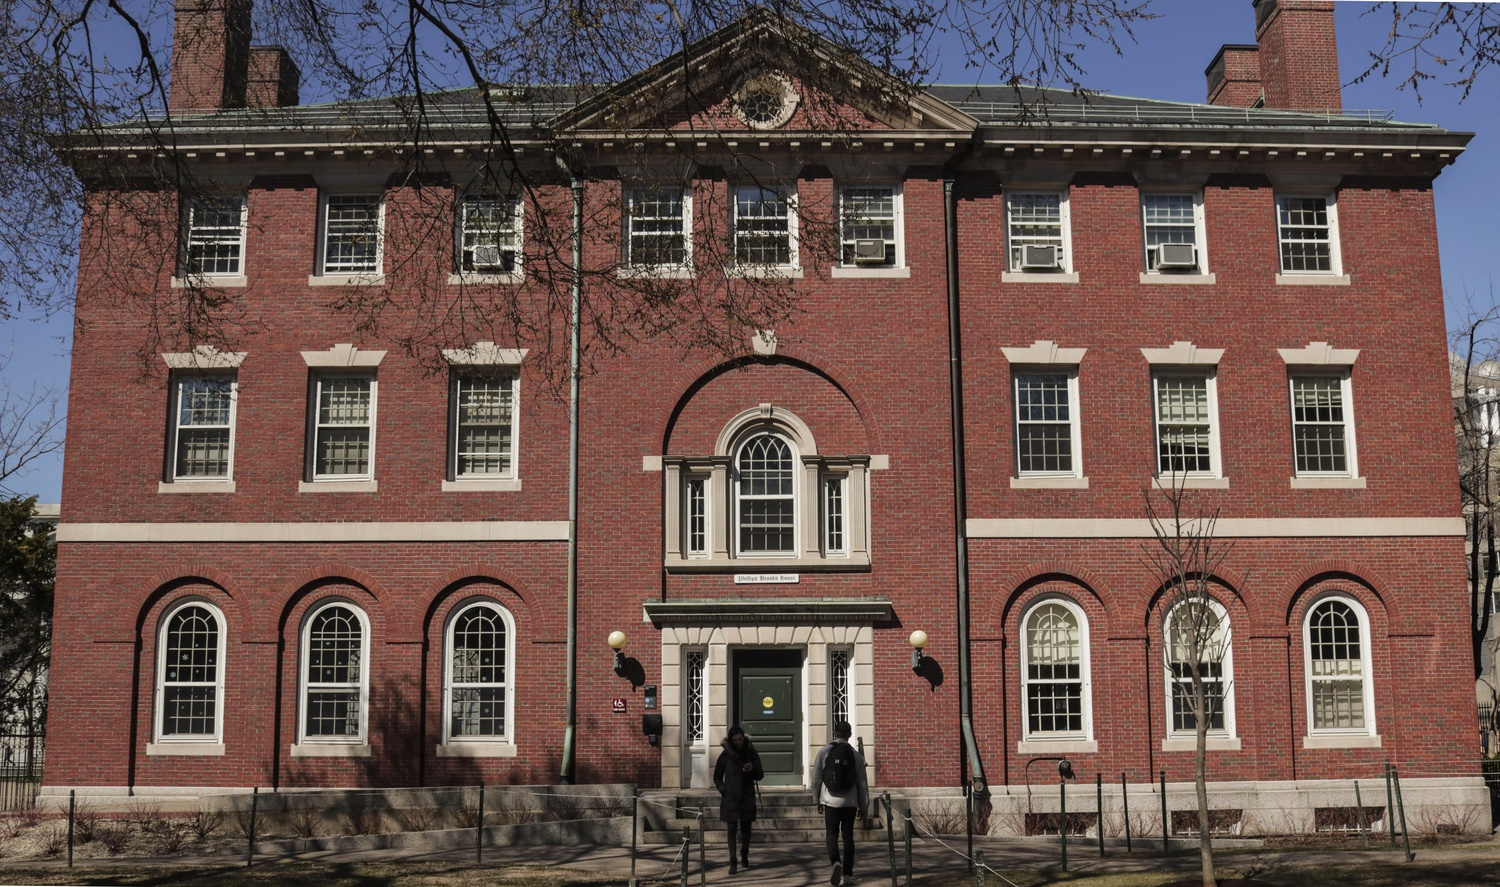 The Phillips Brooks House in Harvard Yard on Thursday afternoon. The building currently houses offices for the Center for Public Interest Careers, the Harvard Public Service Network, and the Phillips Brooks House Association.